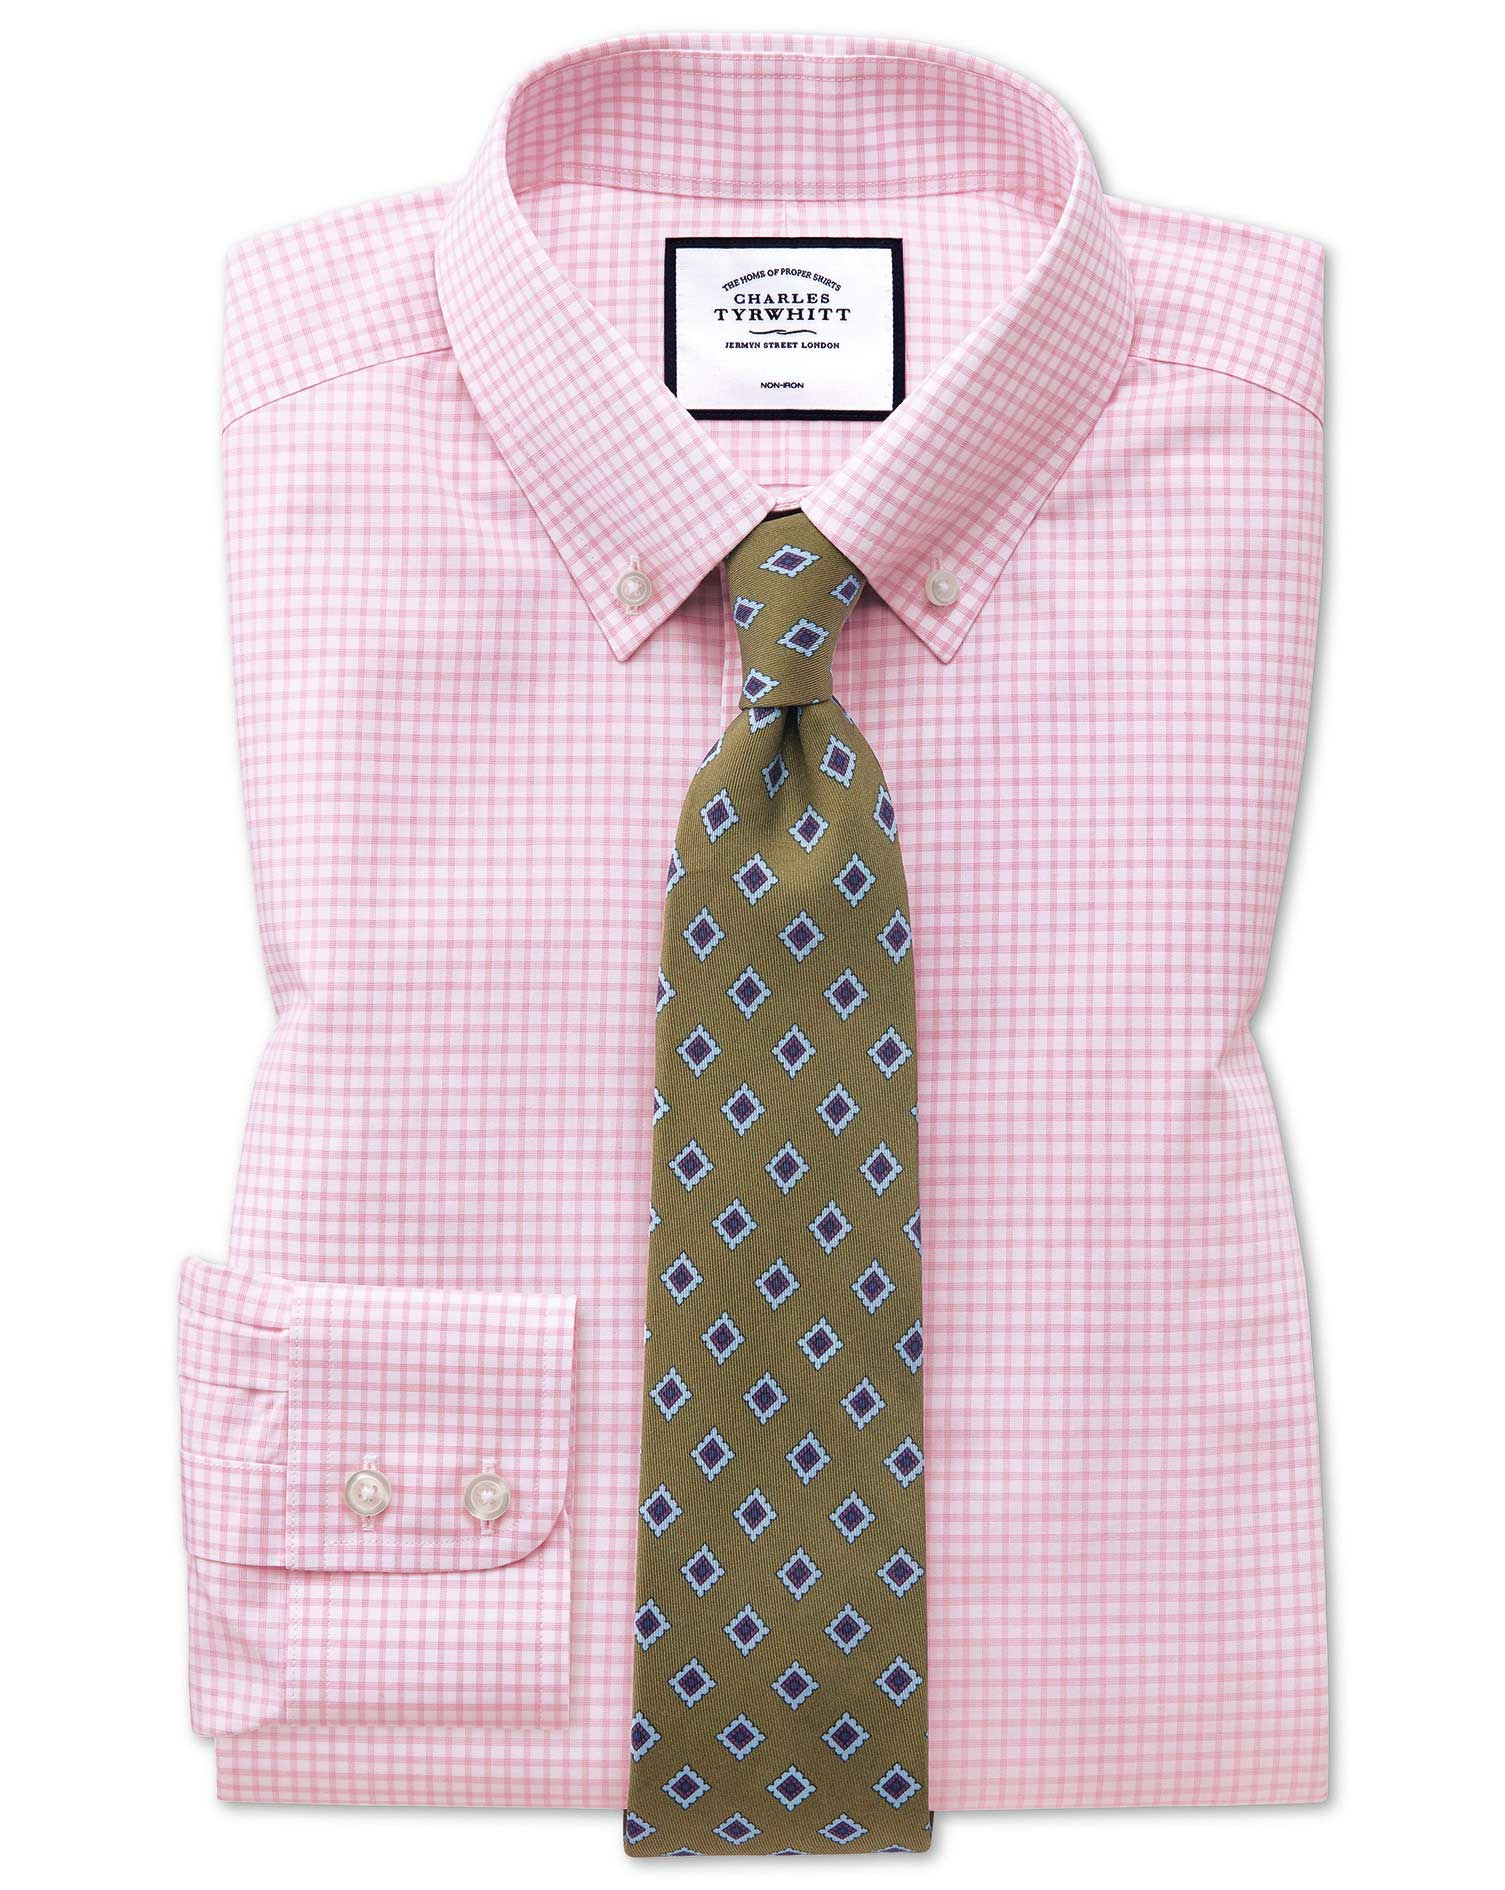 Extra Slim Fit Button-Down Non-Iron Pink Windowpane Check Cotton Formal Shirt Single Cuff Size 16.5/